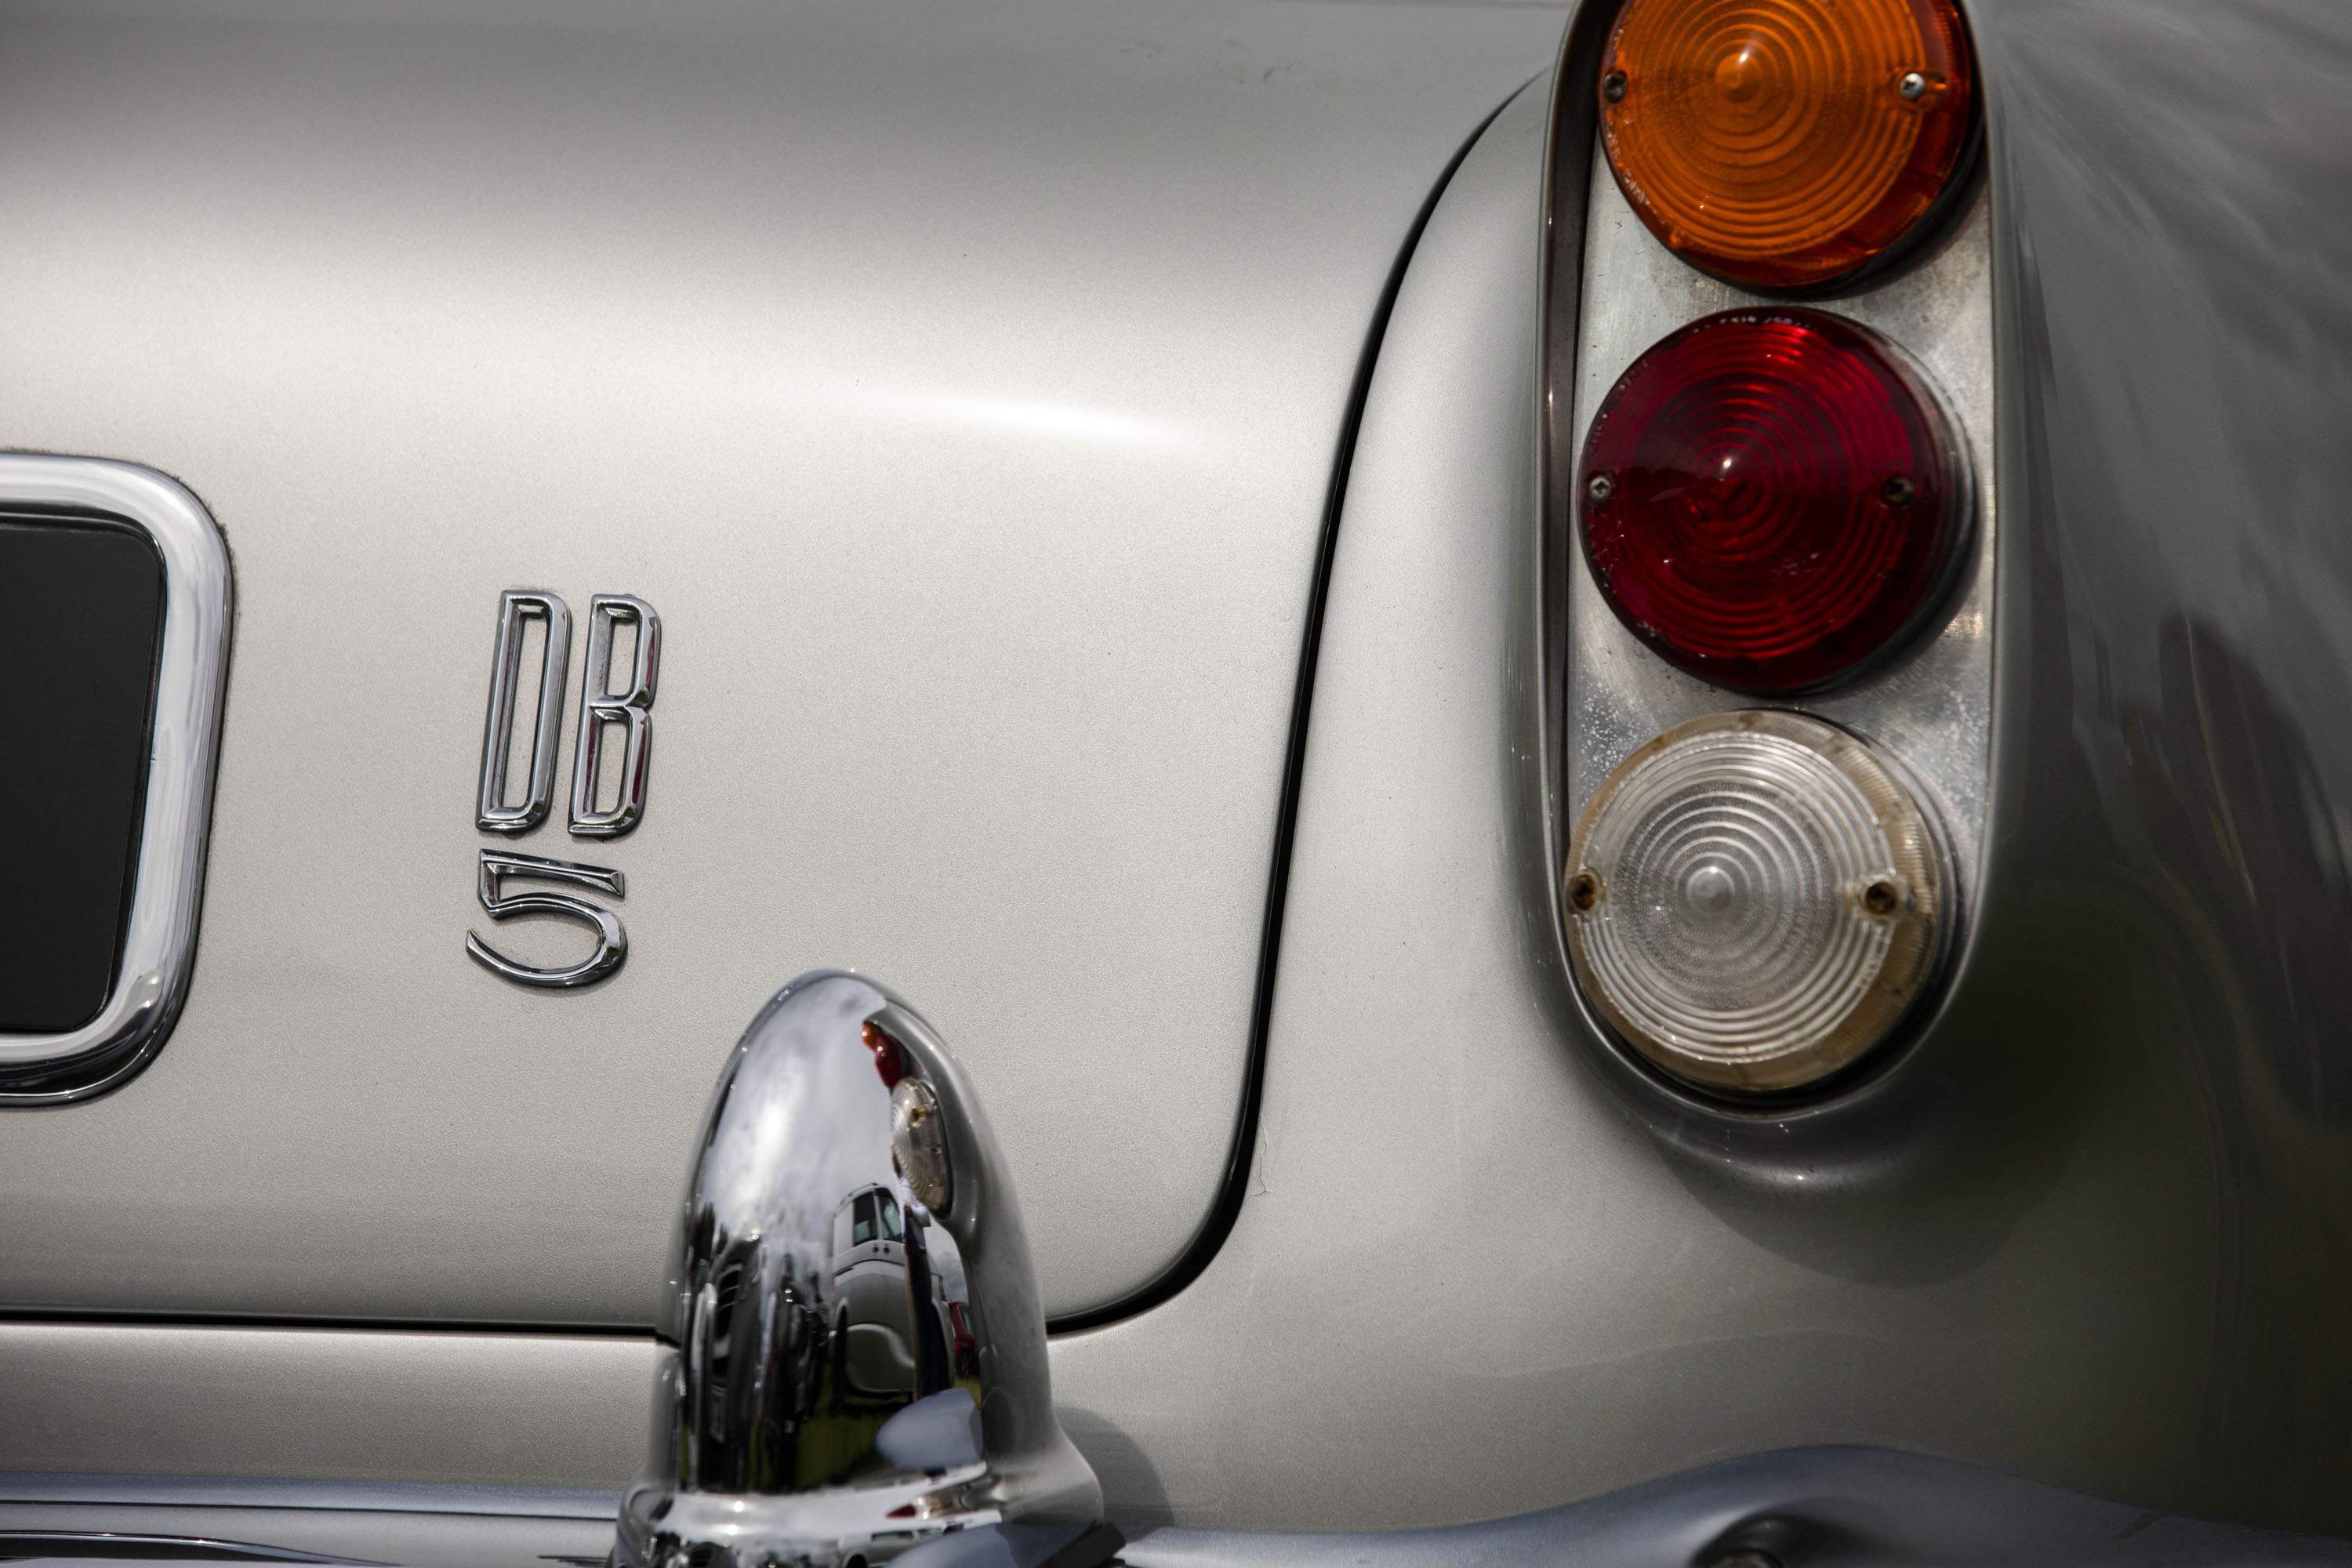 Aston Martin DB5 badge